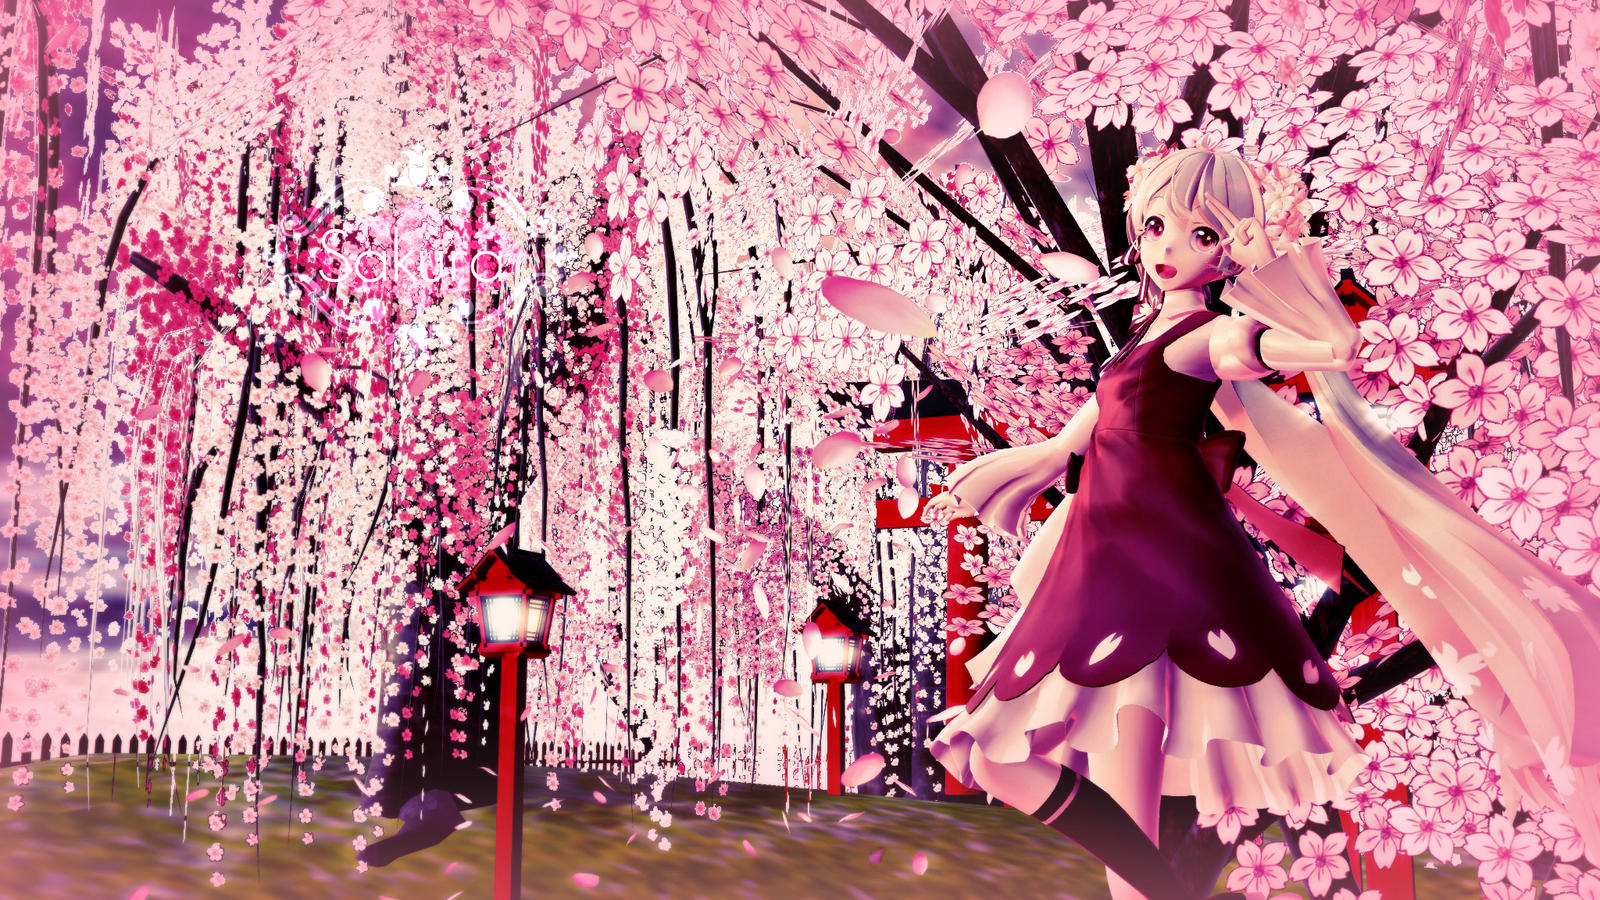 Cherry Blossoms Mmd Sakura Wallpaper Hd By Lenmjpu On Deviantart